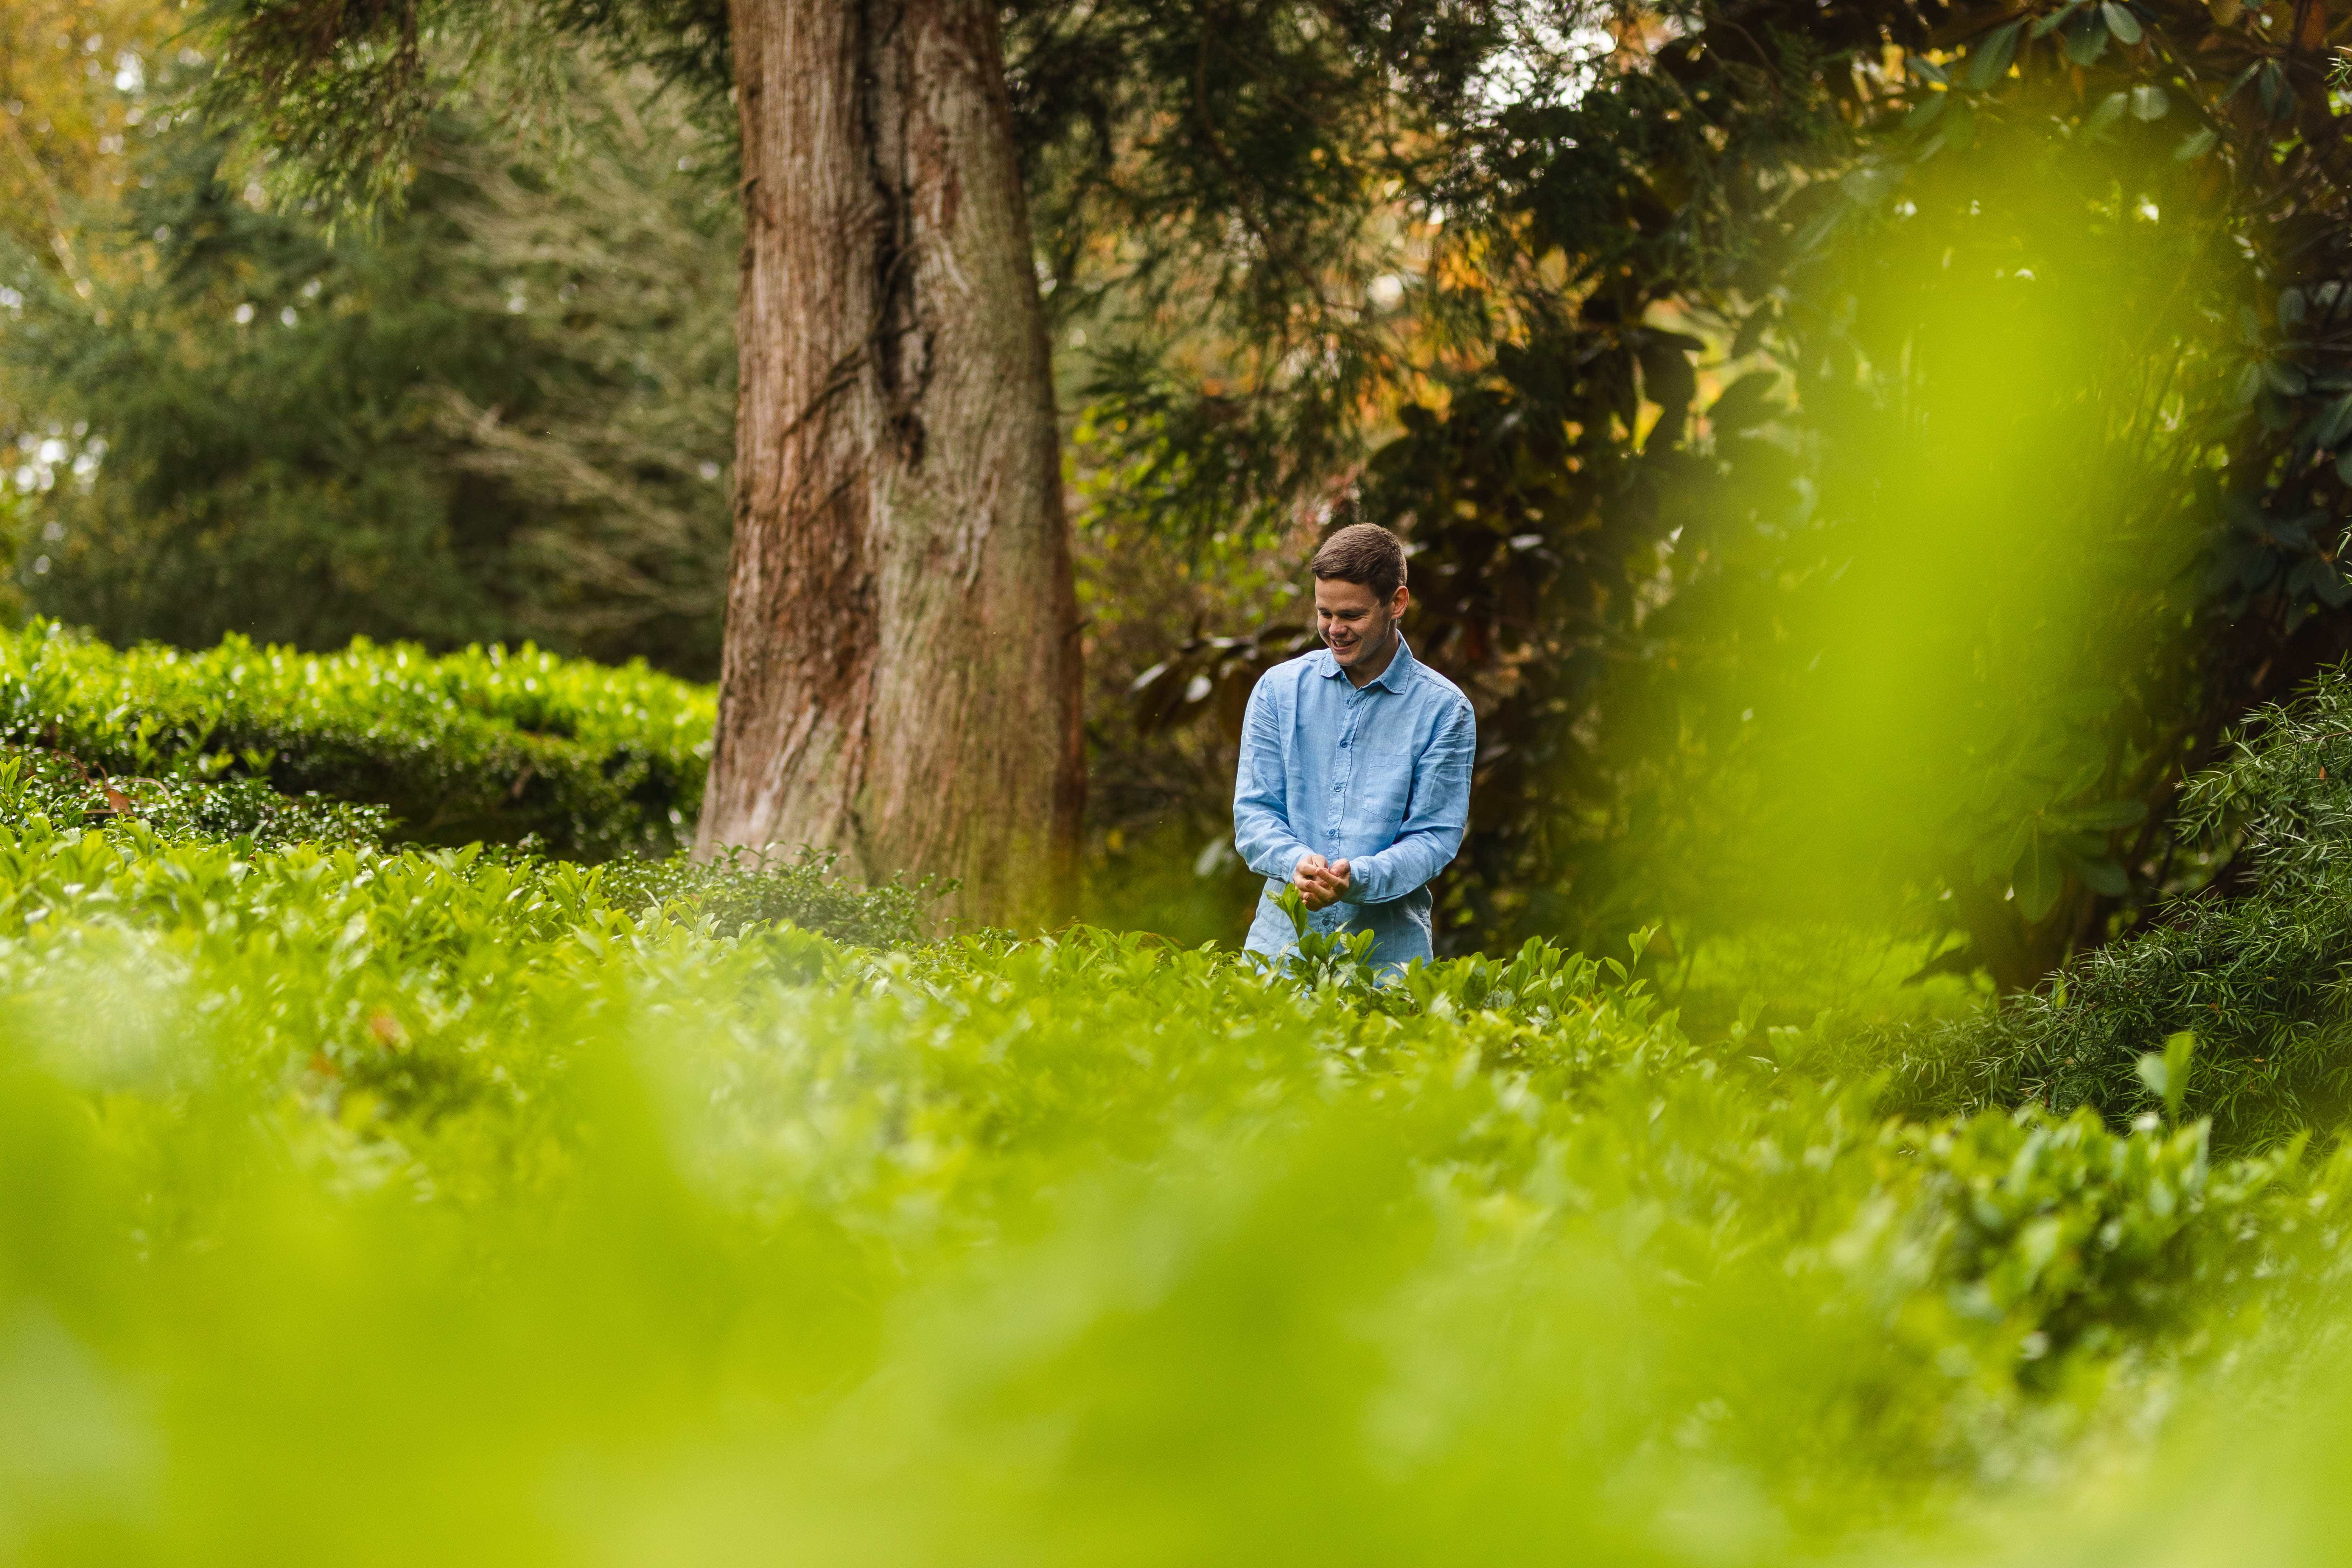 Archie Boscawen amongst a field of tea camelia trees shrubs with blue shirt on.